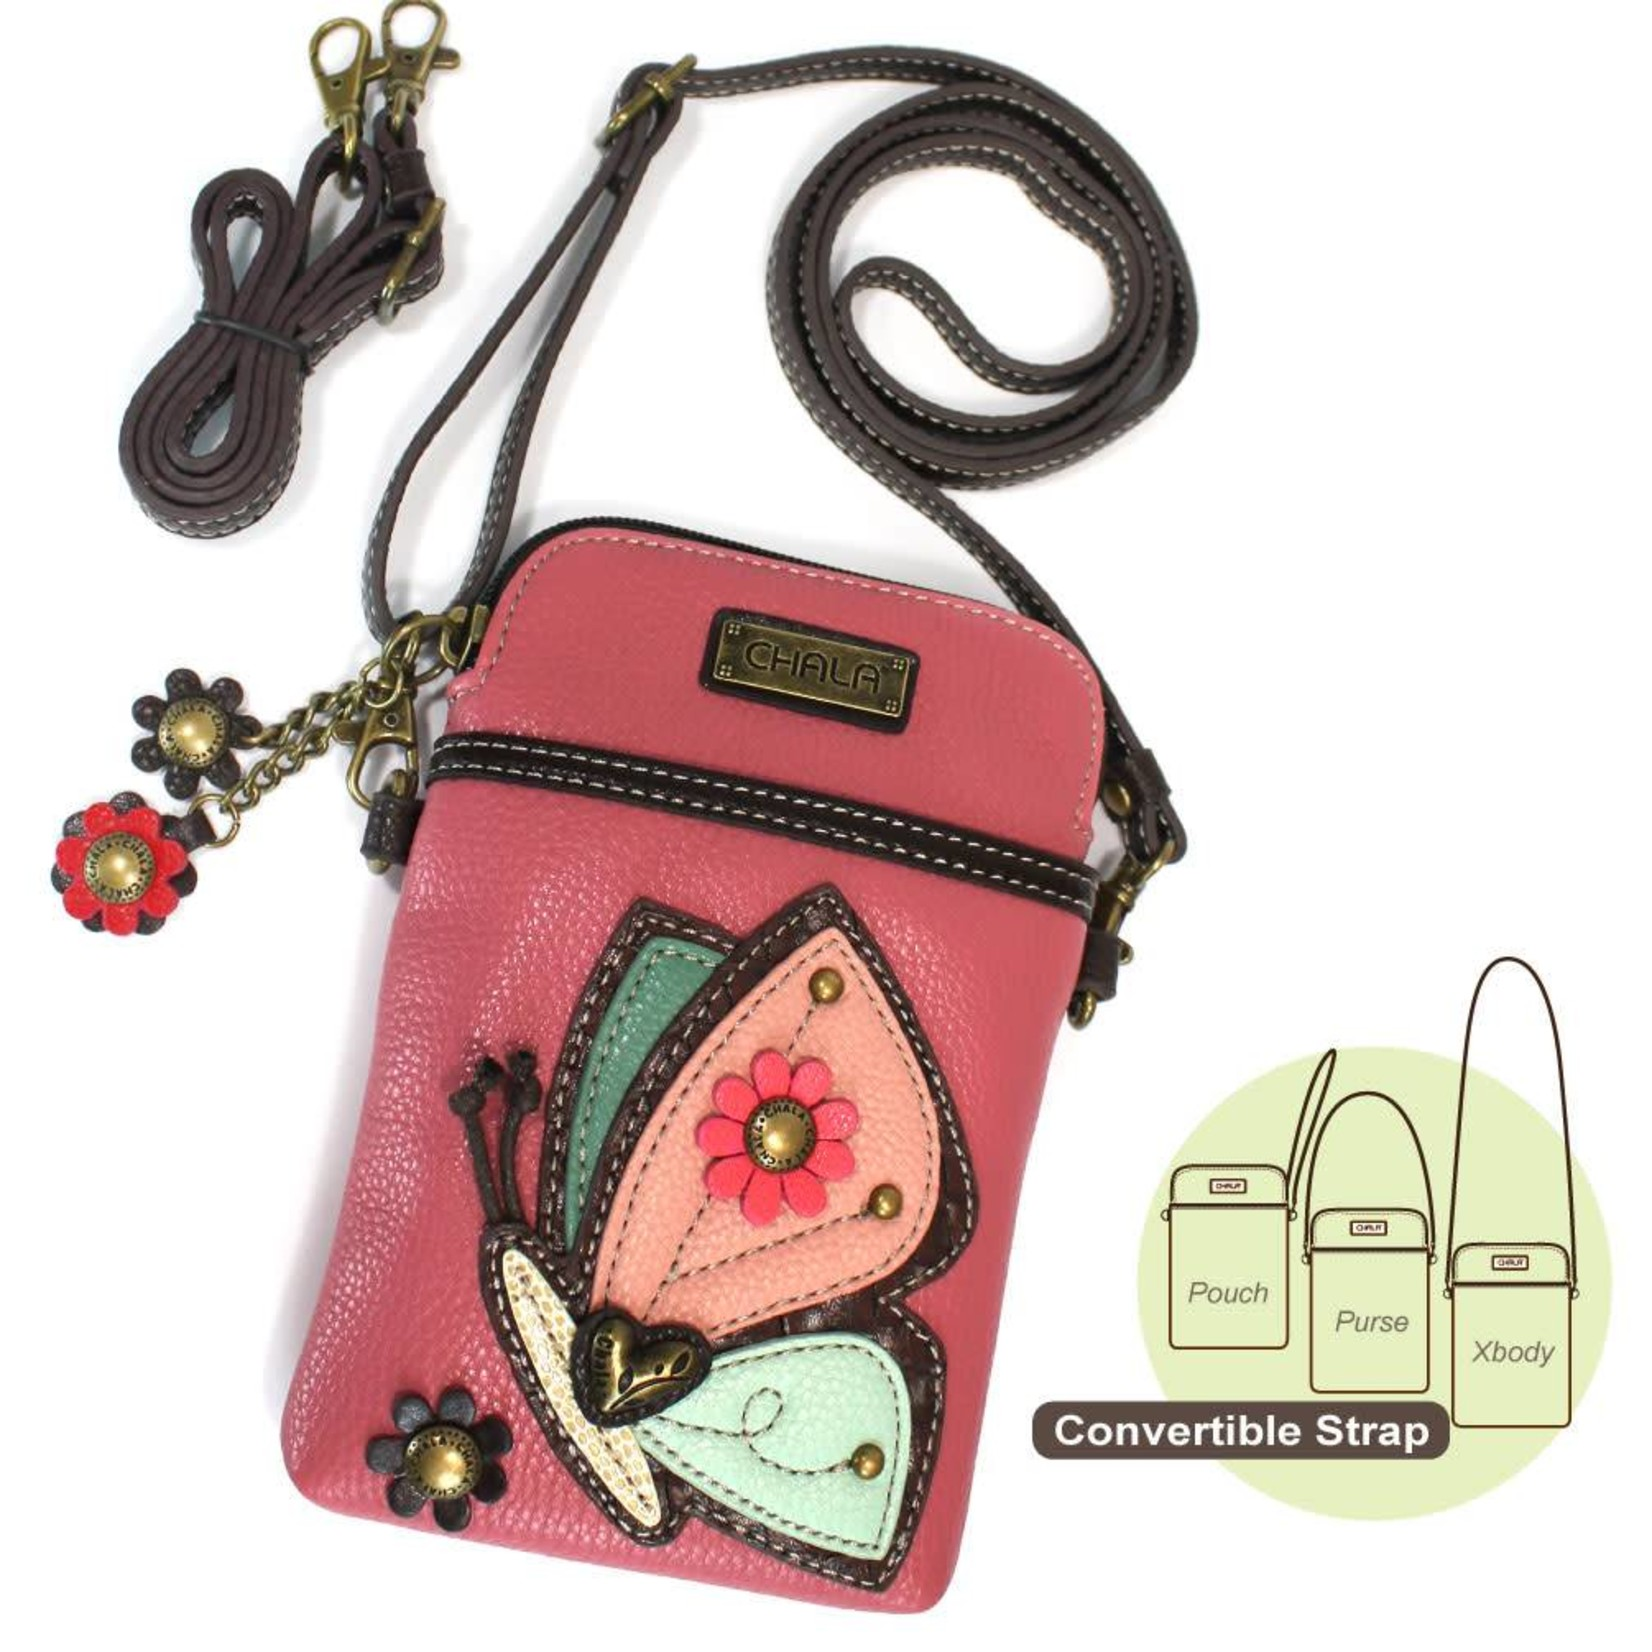 Chala Cell Phone Crossbody Butterfly Pink